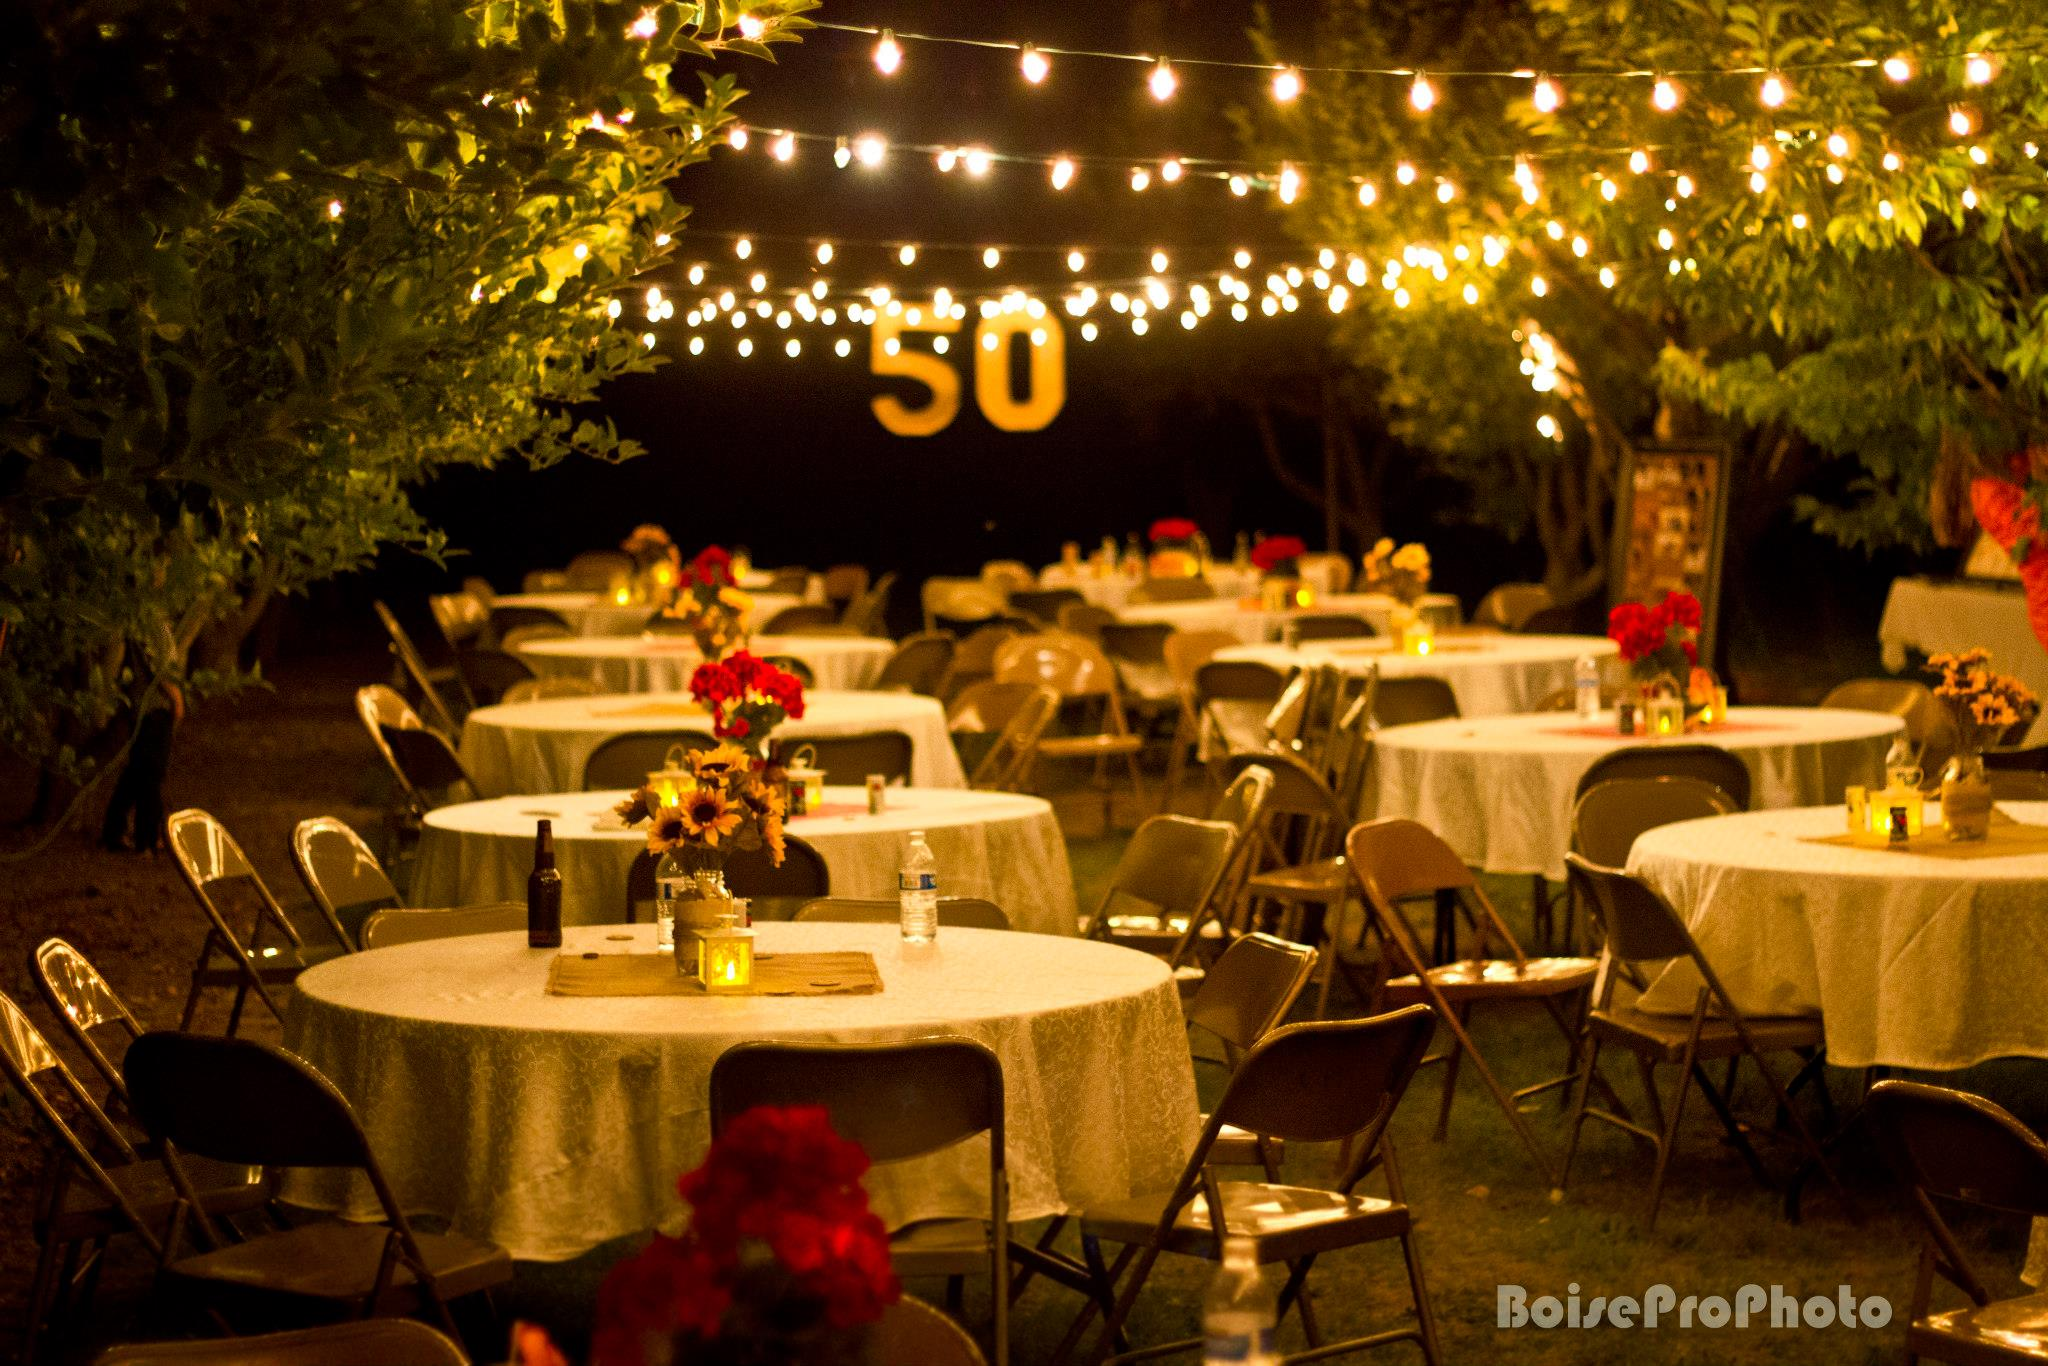 Diy 50th wedding anniversary party from salty bison for 50 birthday party decoration ideas